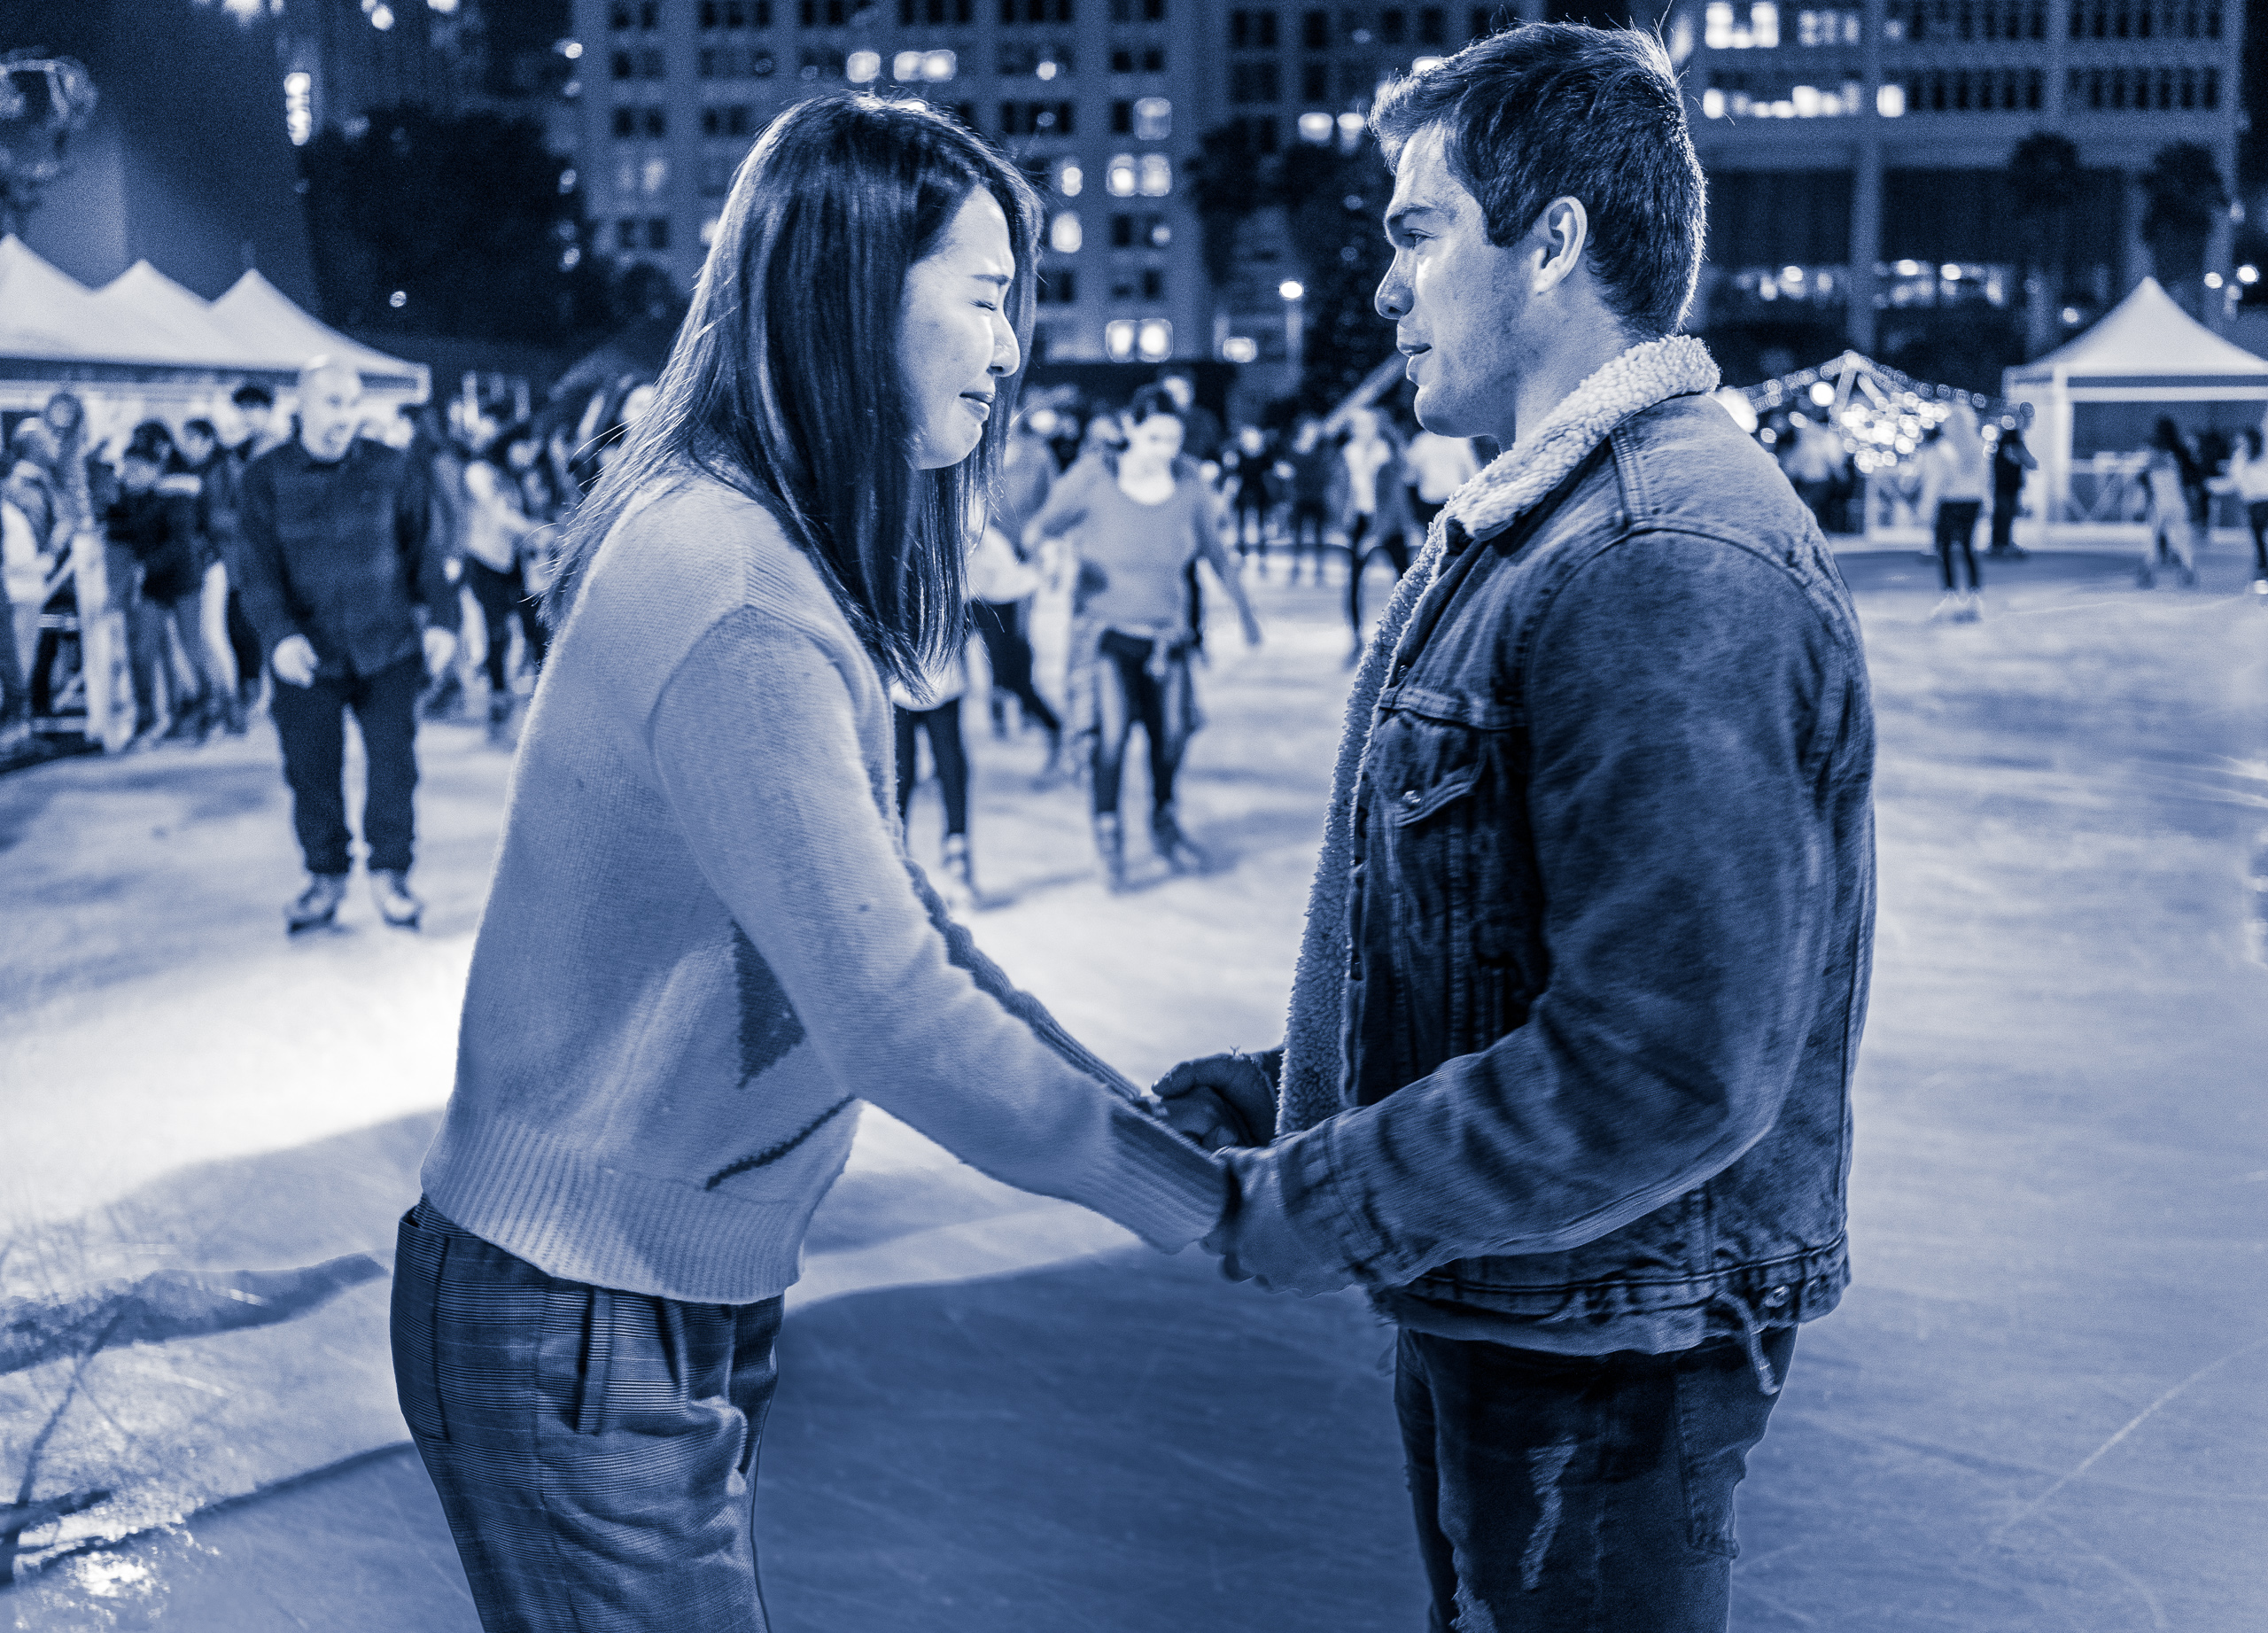 a couple on the ice at Pershing Square in Los Angeles. The guy is an experienced skater and is calm. The girl is a novice who is nervous and closes her eyes with a grimace